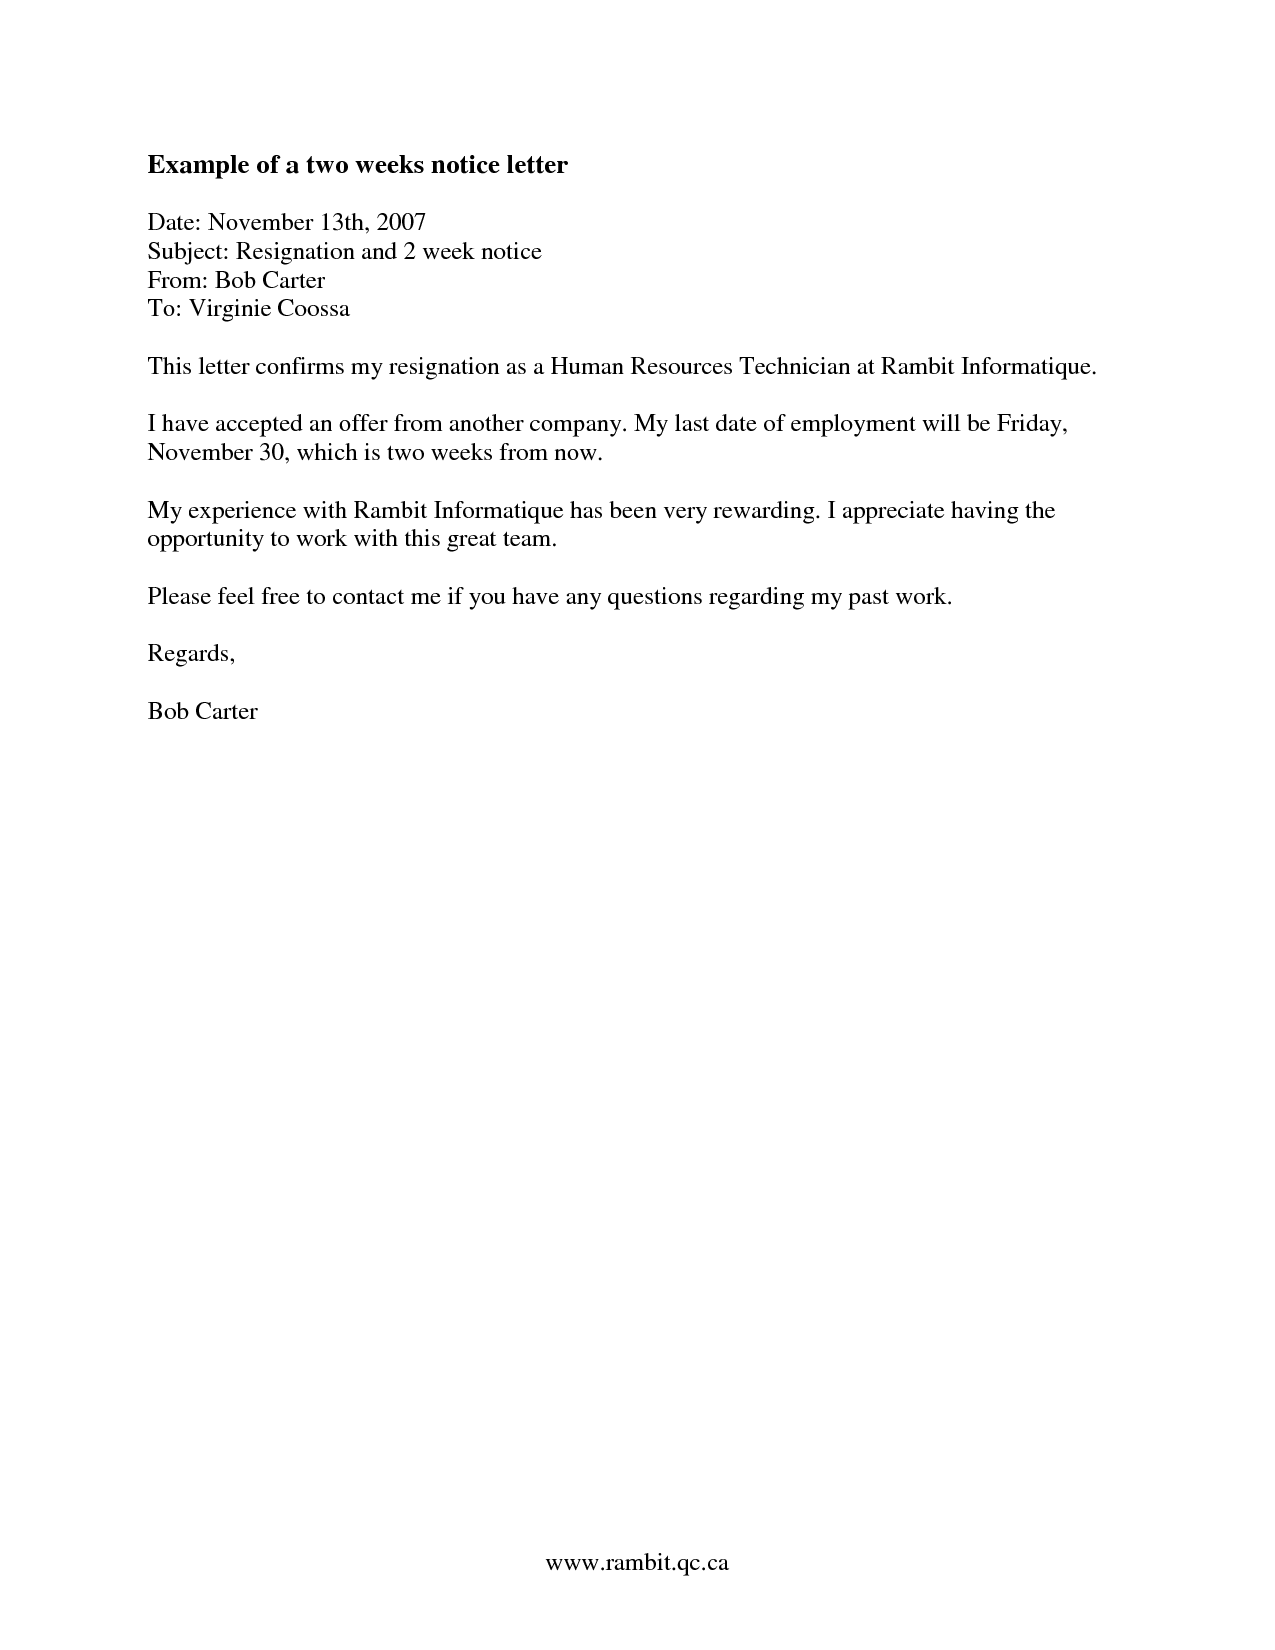 2 Weeks Notice Letter Resignation Week WordsWriting A Of Email Sample